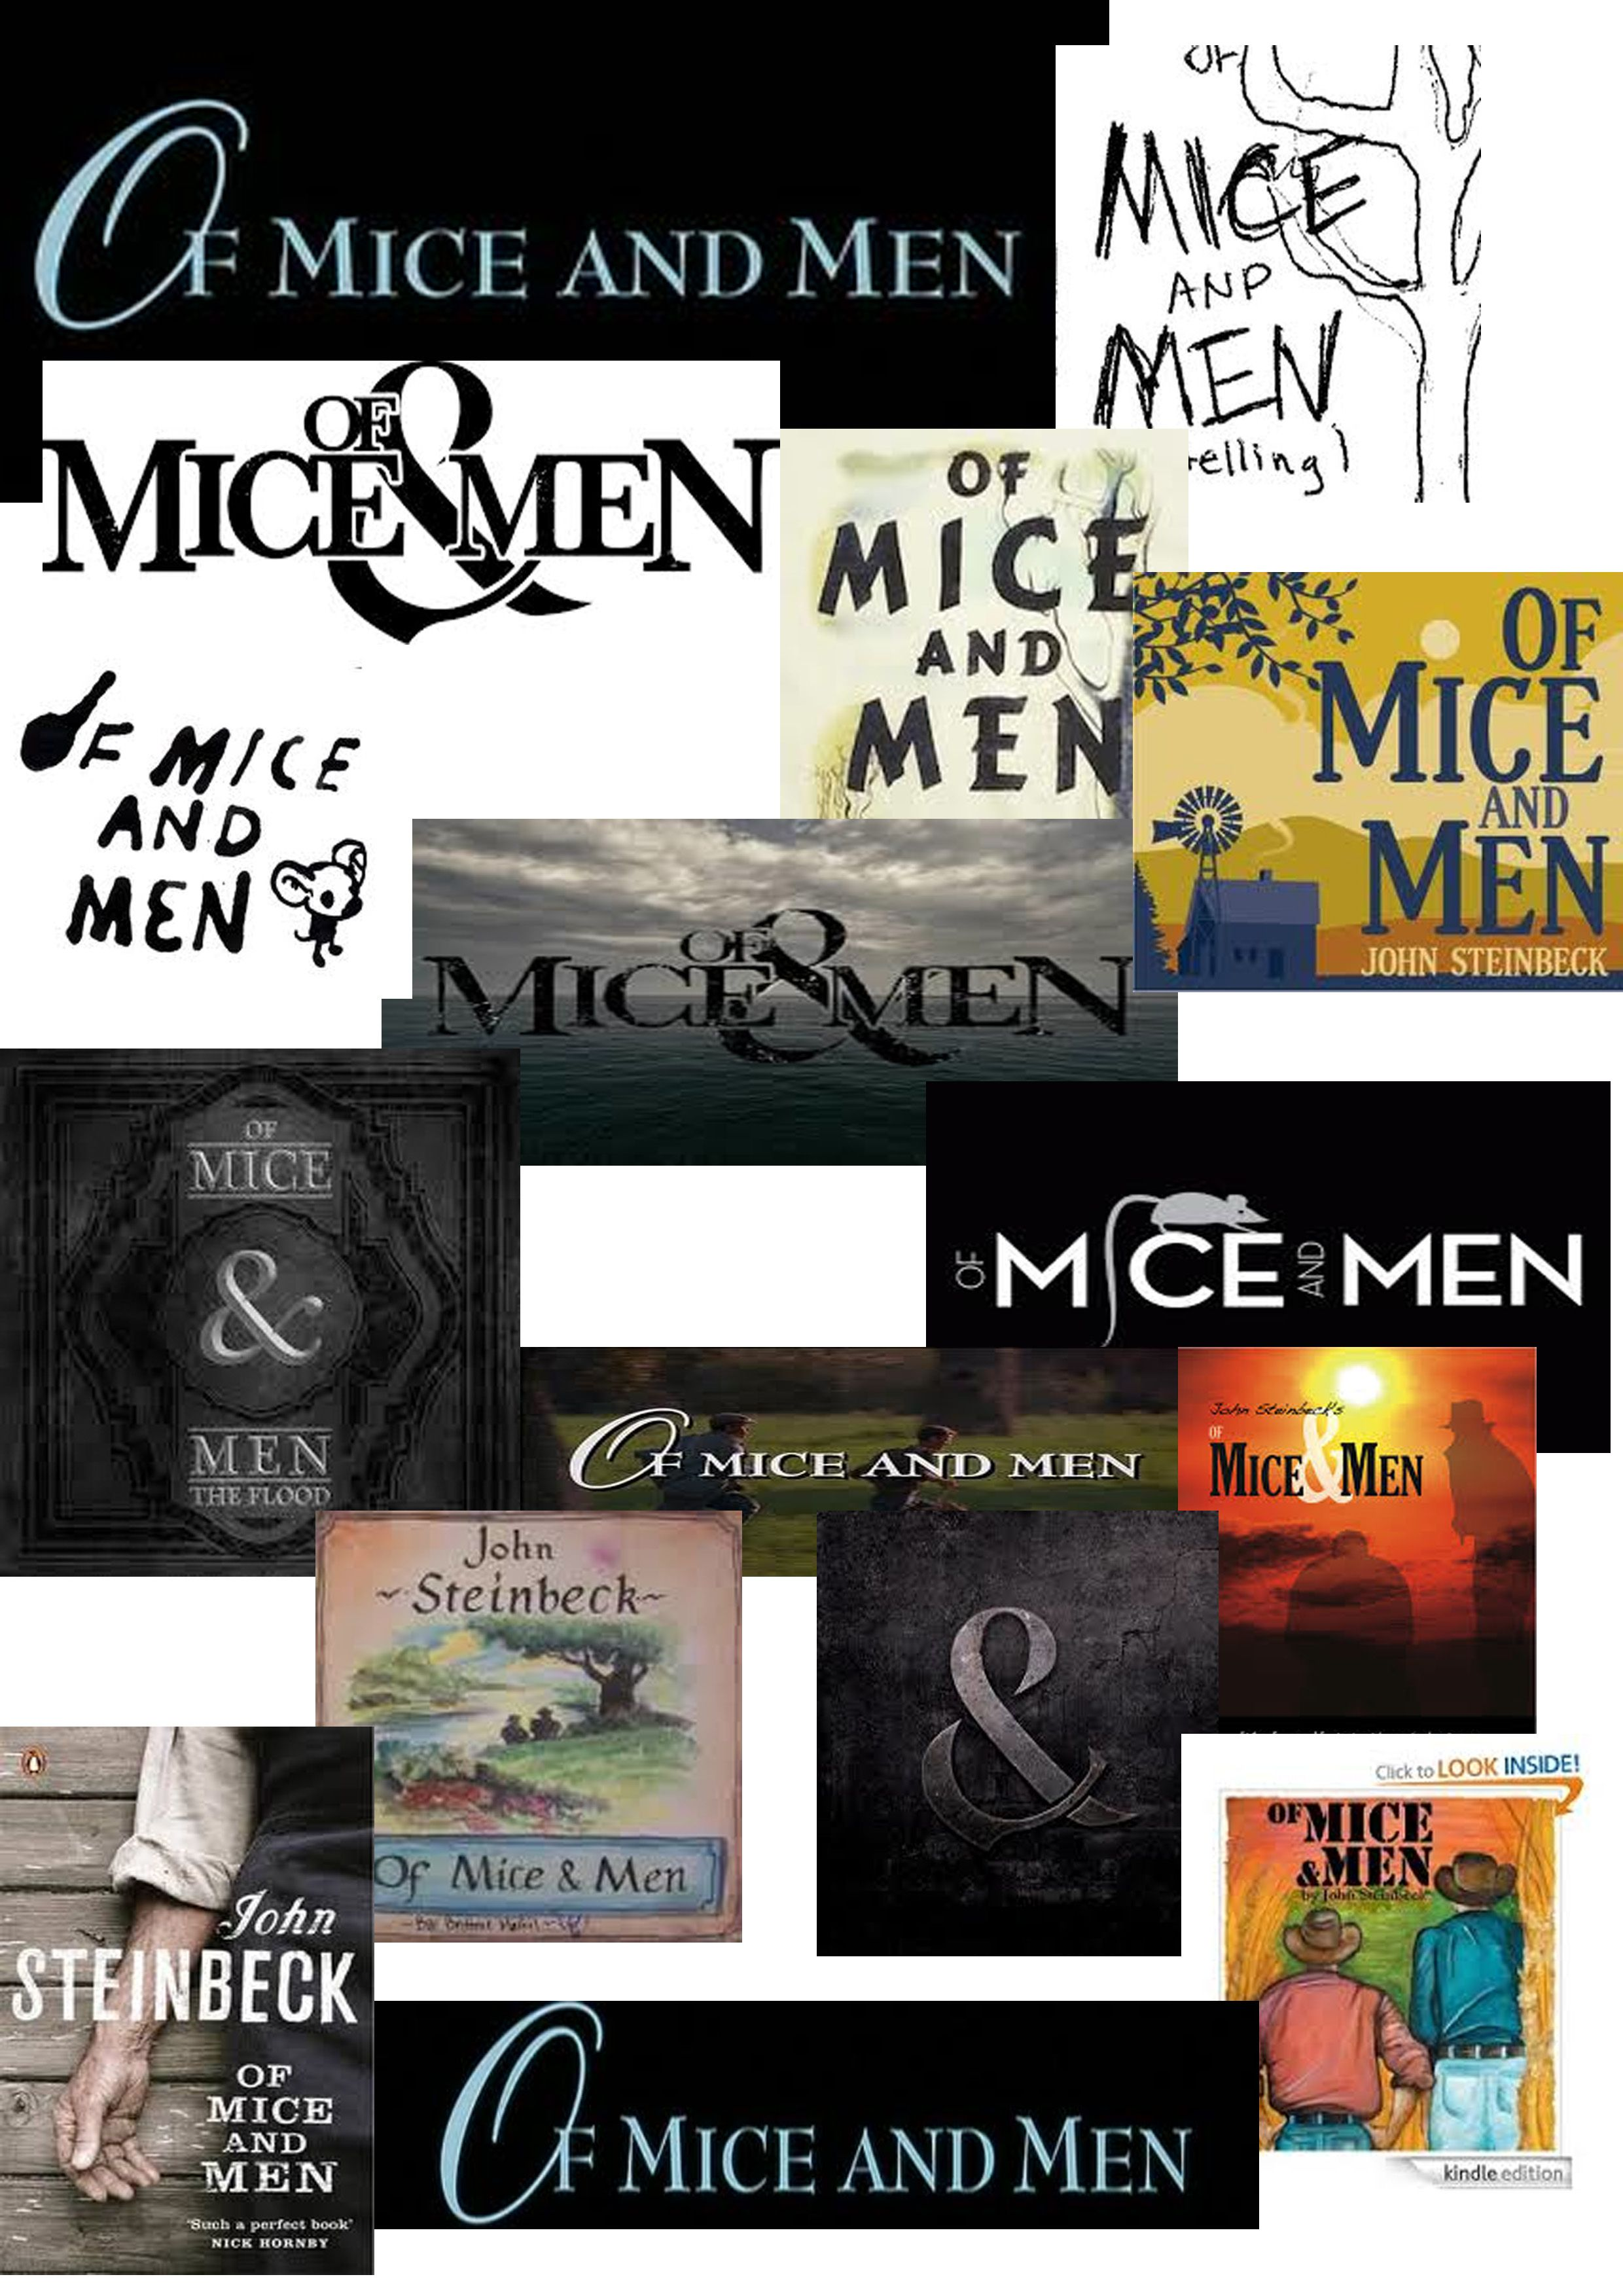 of mice and men woman analysis Of mice and men literary analysis expectation is the root of all heartache (william shakespeare) even the most promising expectations can go wrong, as they do for george and lennie in of mice and men by john steinbeck.